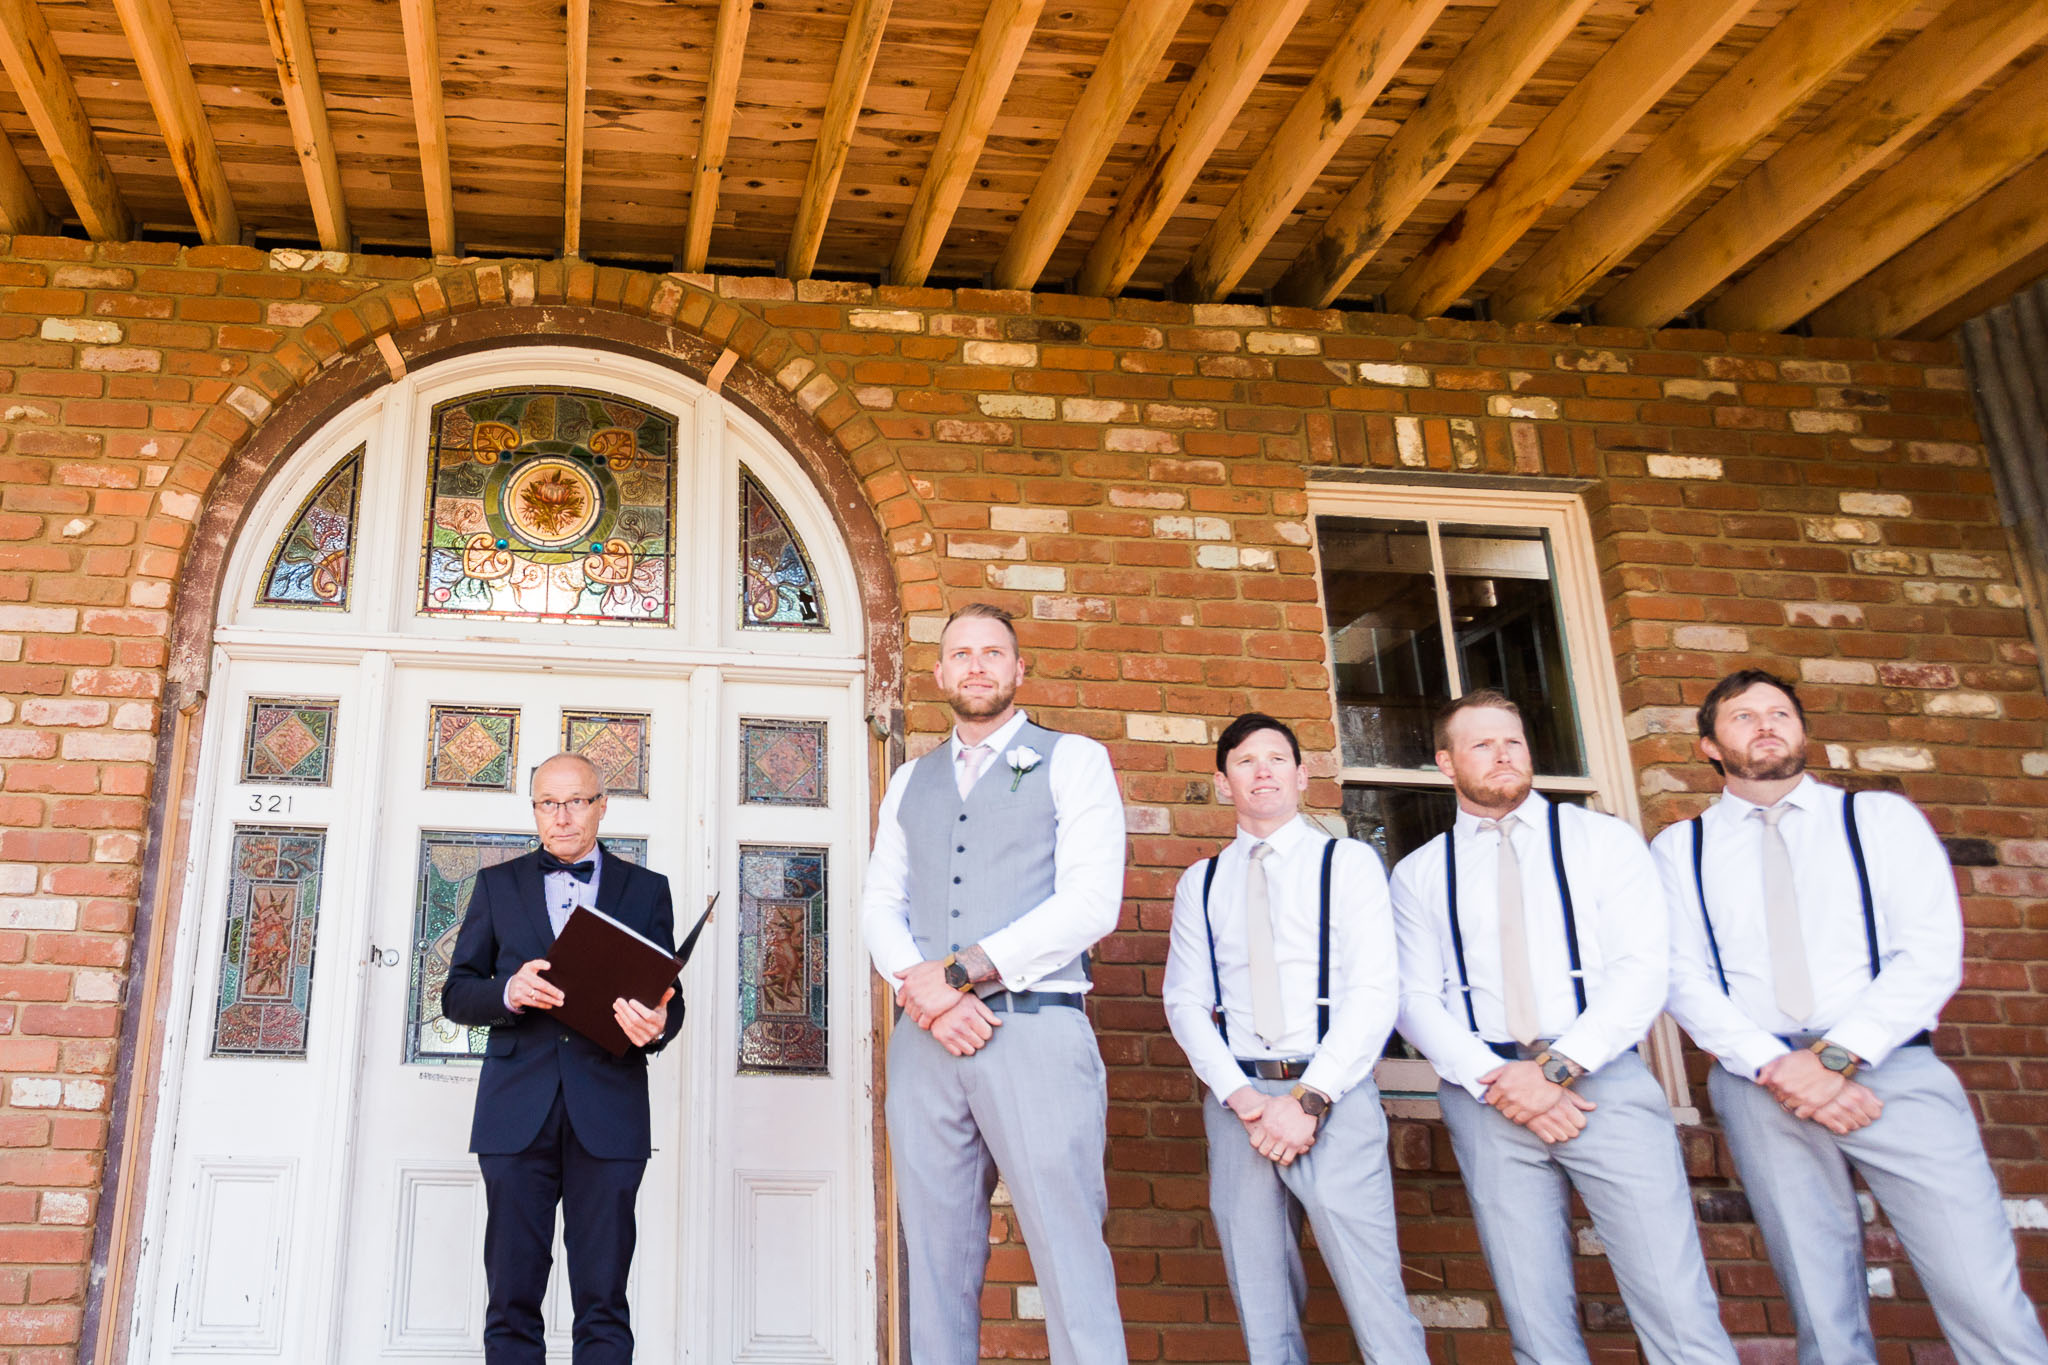 Groom waiting for his bride - Gold Creek Station wedding photography